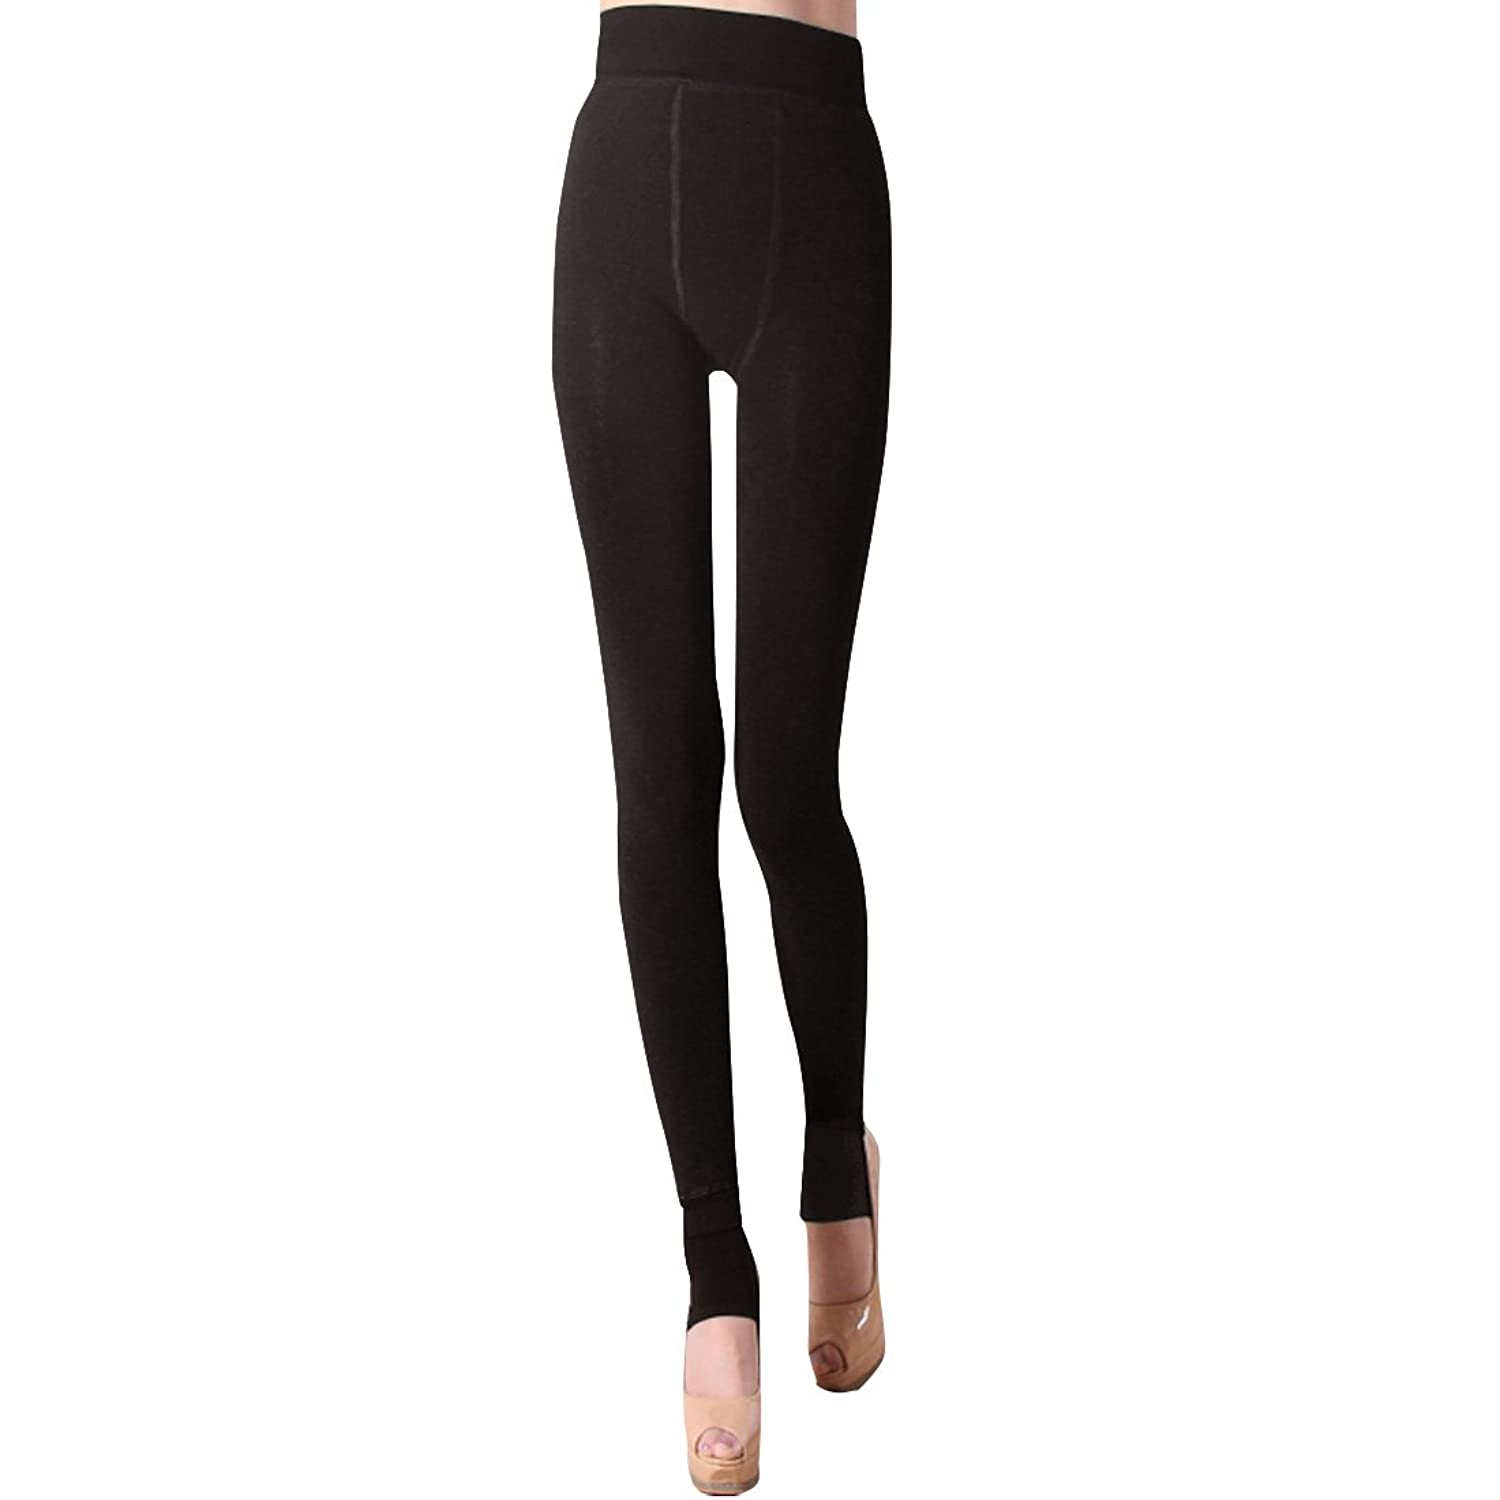 8745efaadc52b Top 10 wholesale Dark Green Leggings - Chinabrands.com